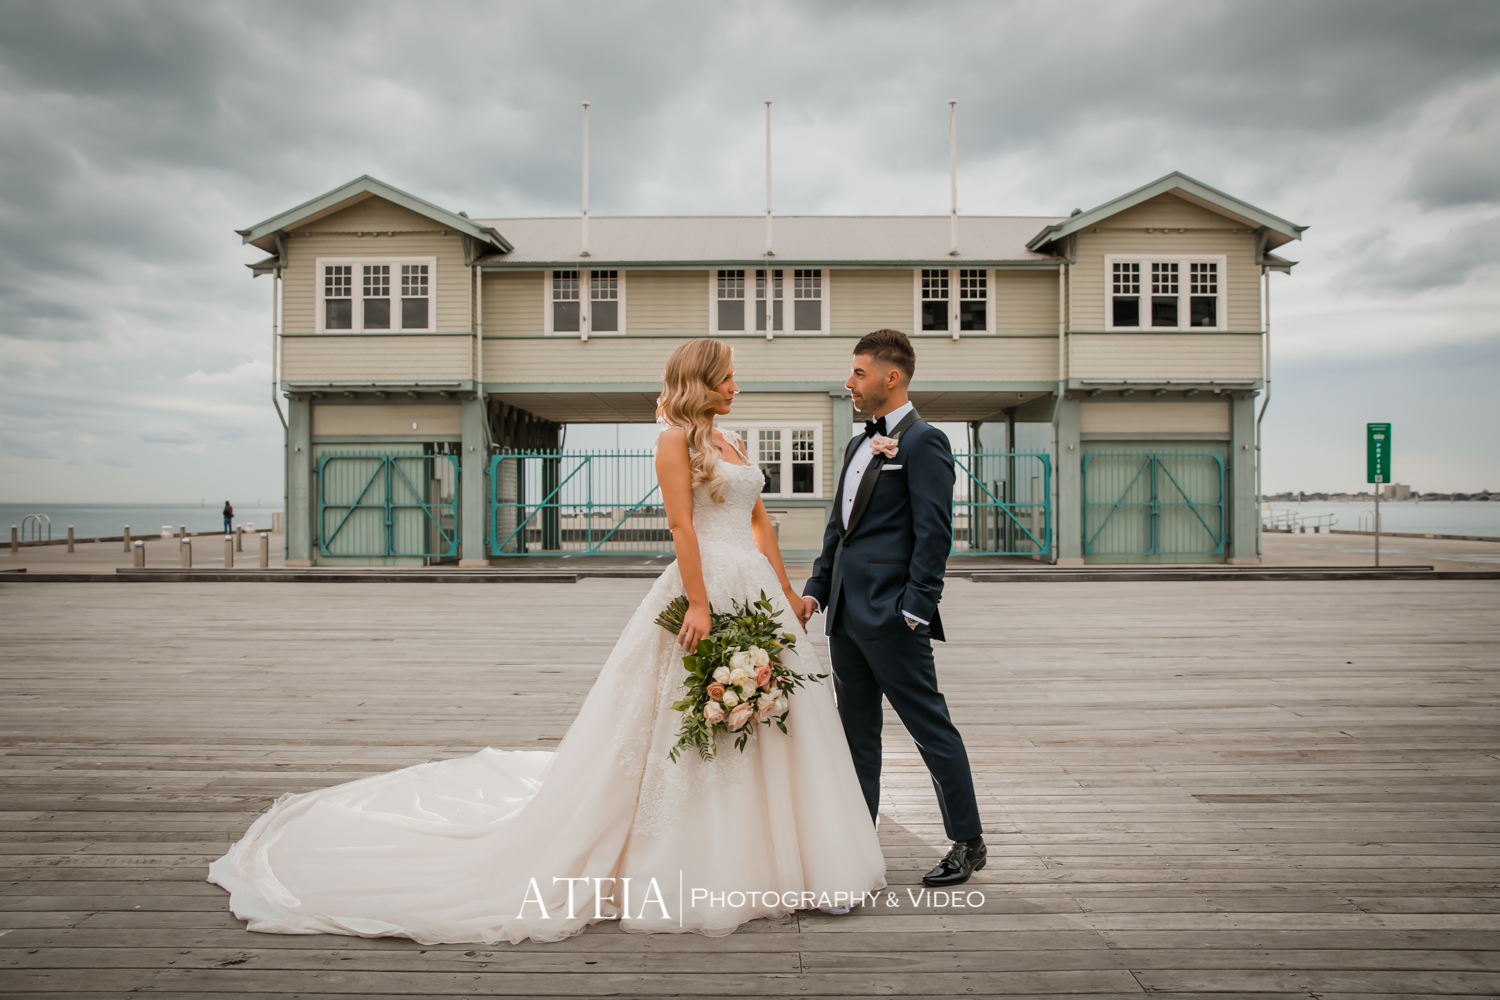 , Vogue Ballroom Wedding Photography in Melbourne by ATEIA